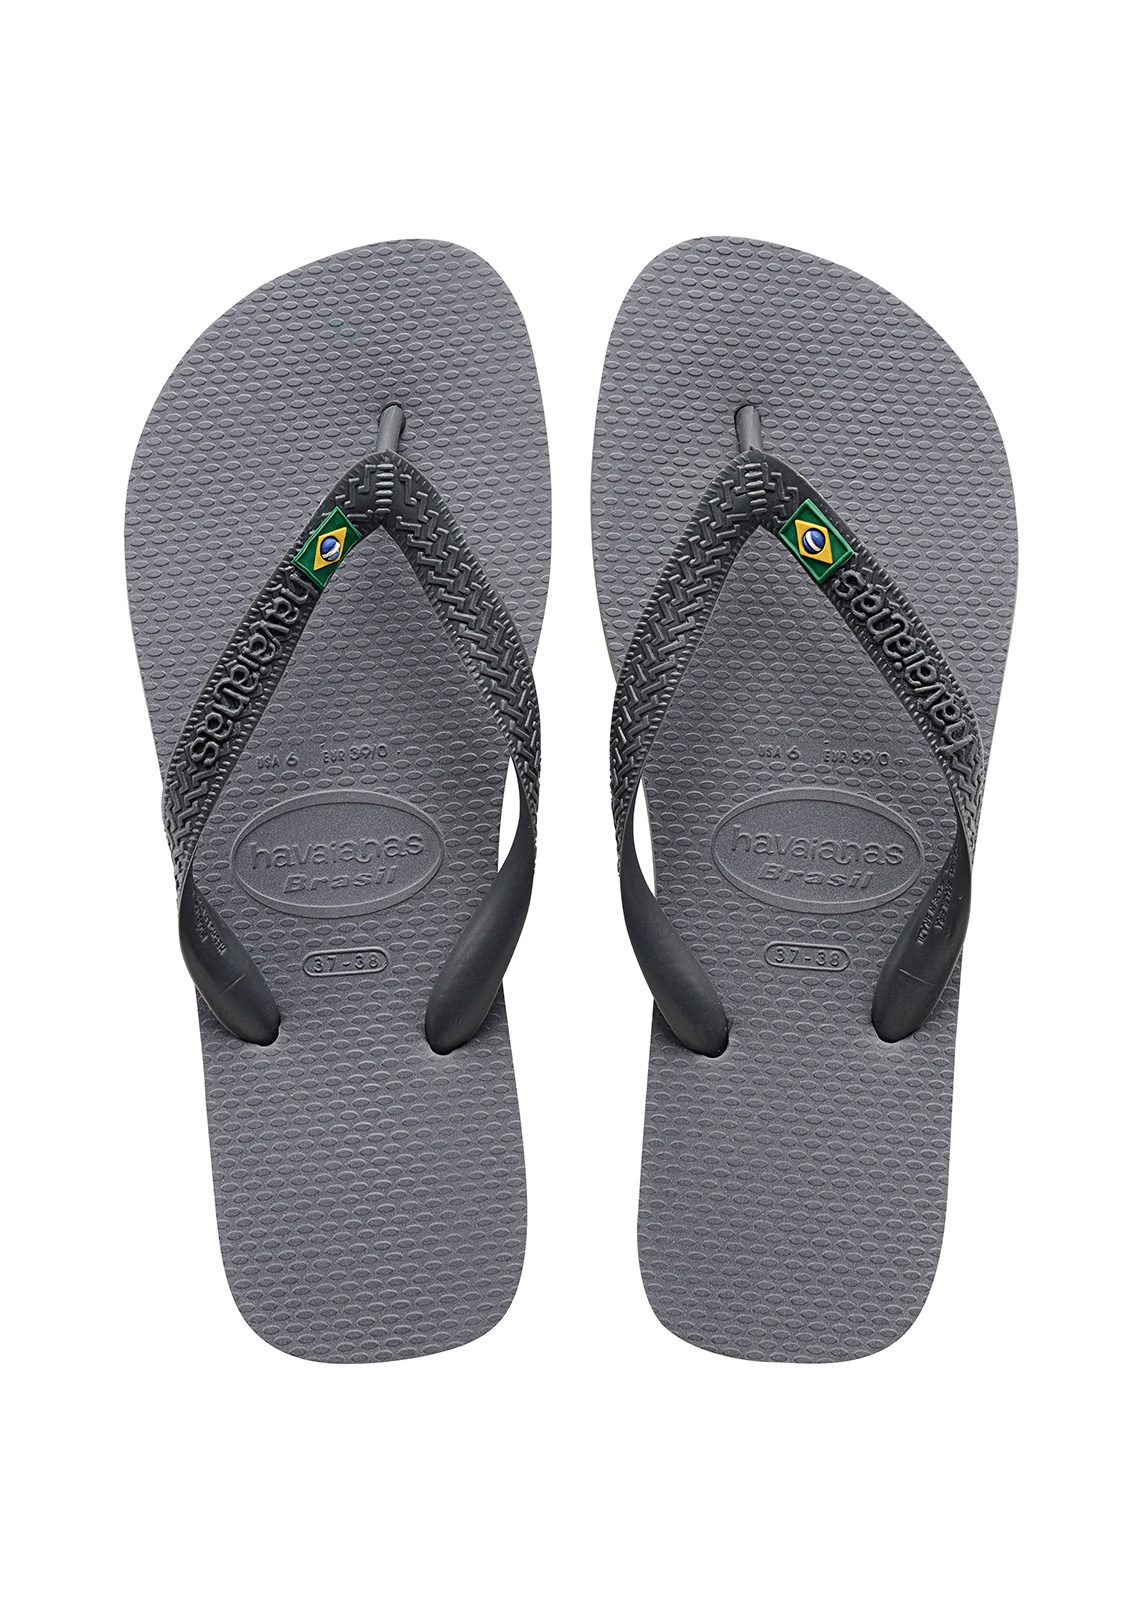 shopping online for sale for sale the cheapest Havaianas Brasil sale supply outlet fashionable 9GAxRynk20